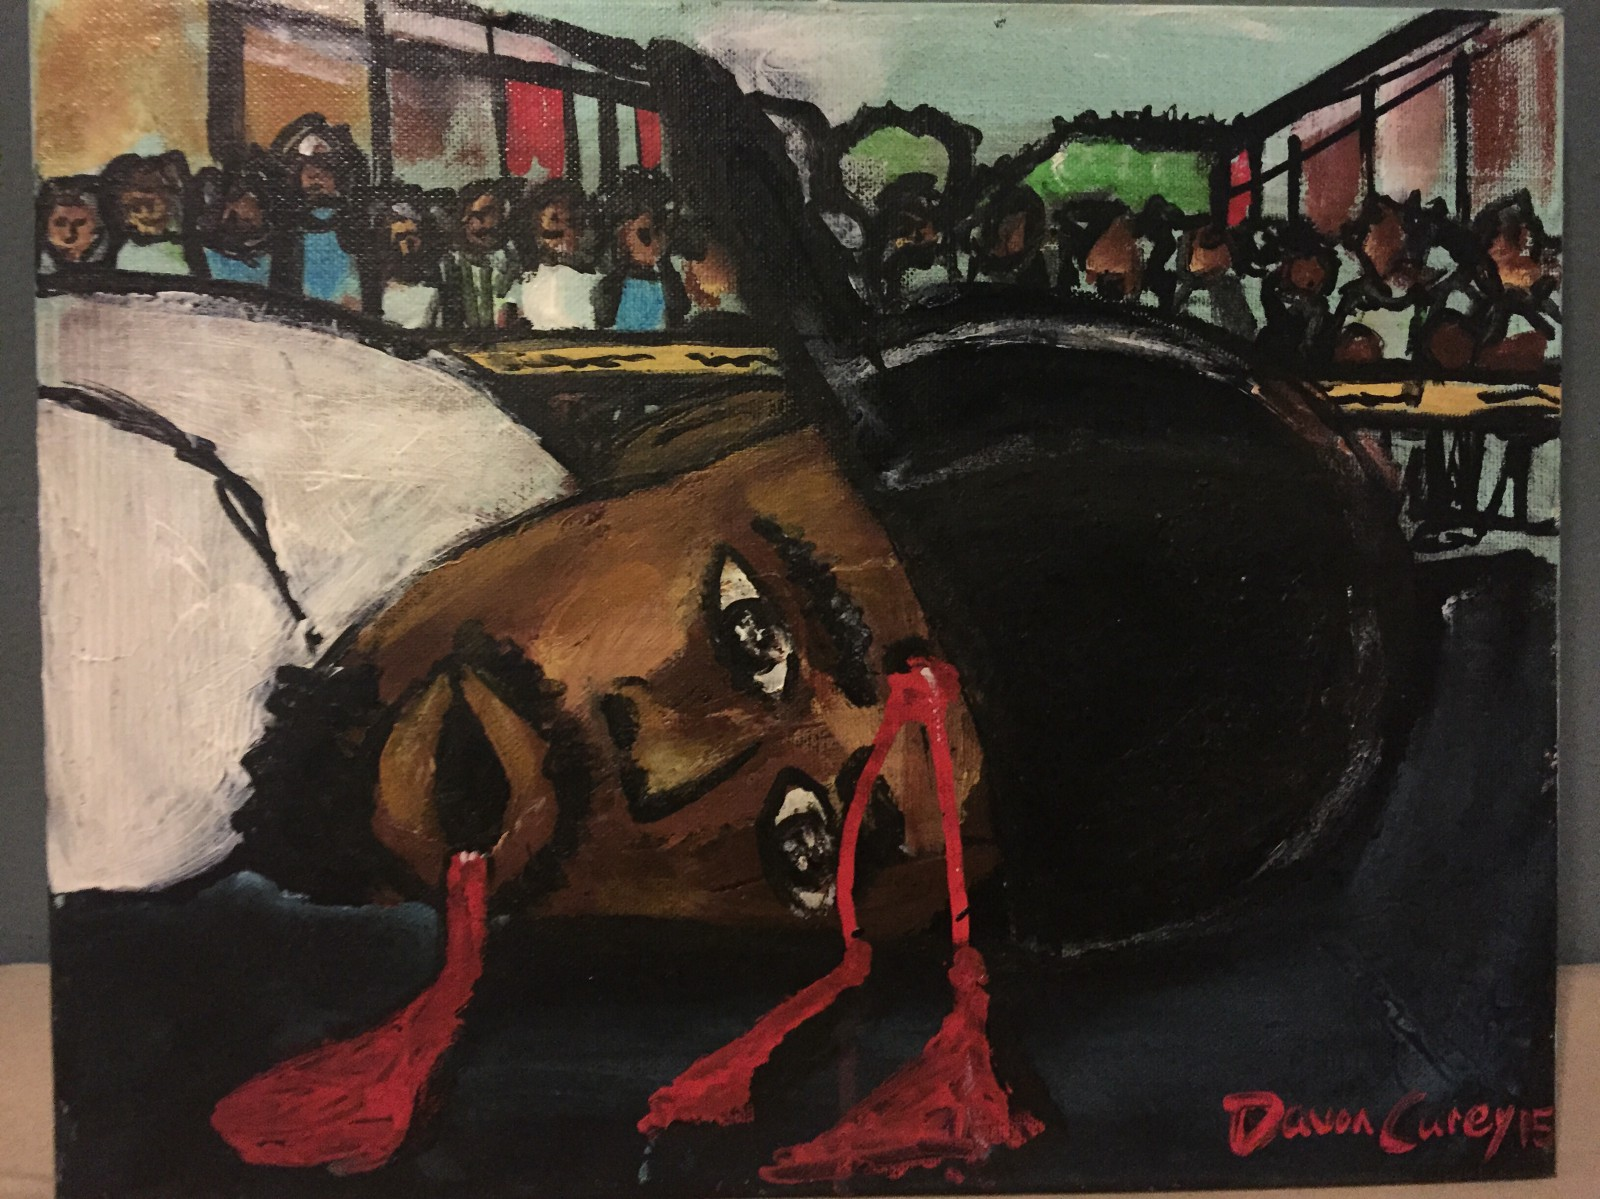 Painting by @davoncarey (Click link. watch video) https://www.youtube.com/watch?v=KJ8q4wpqv2I